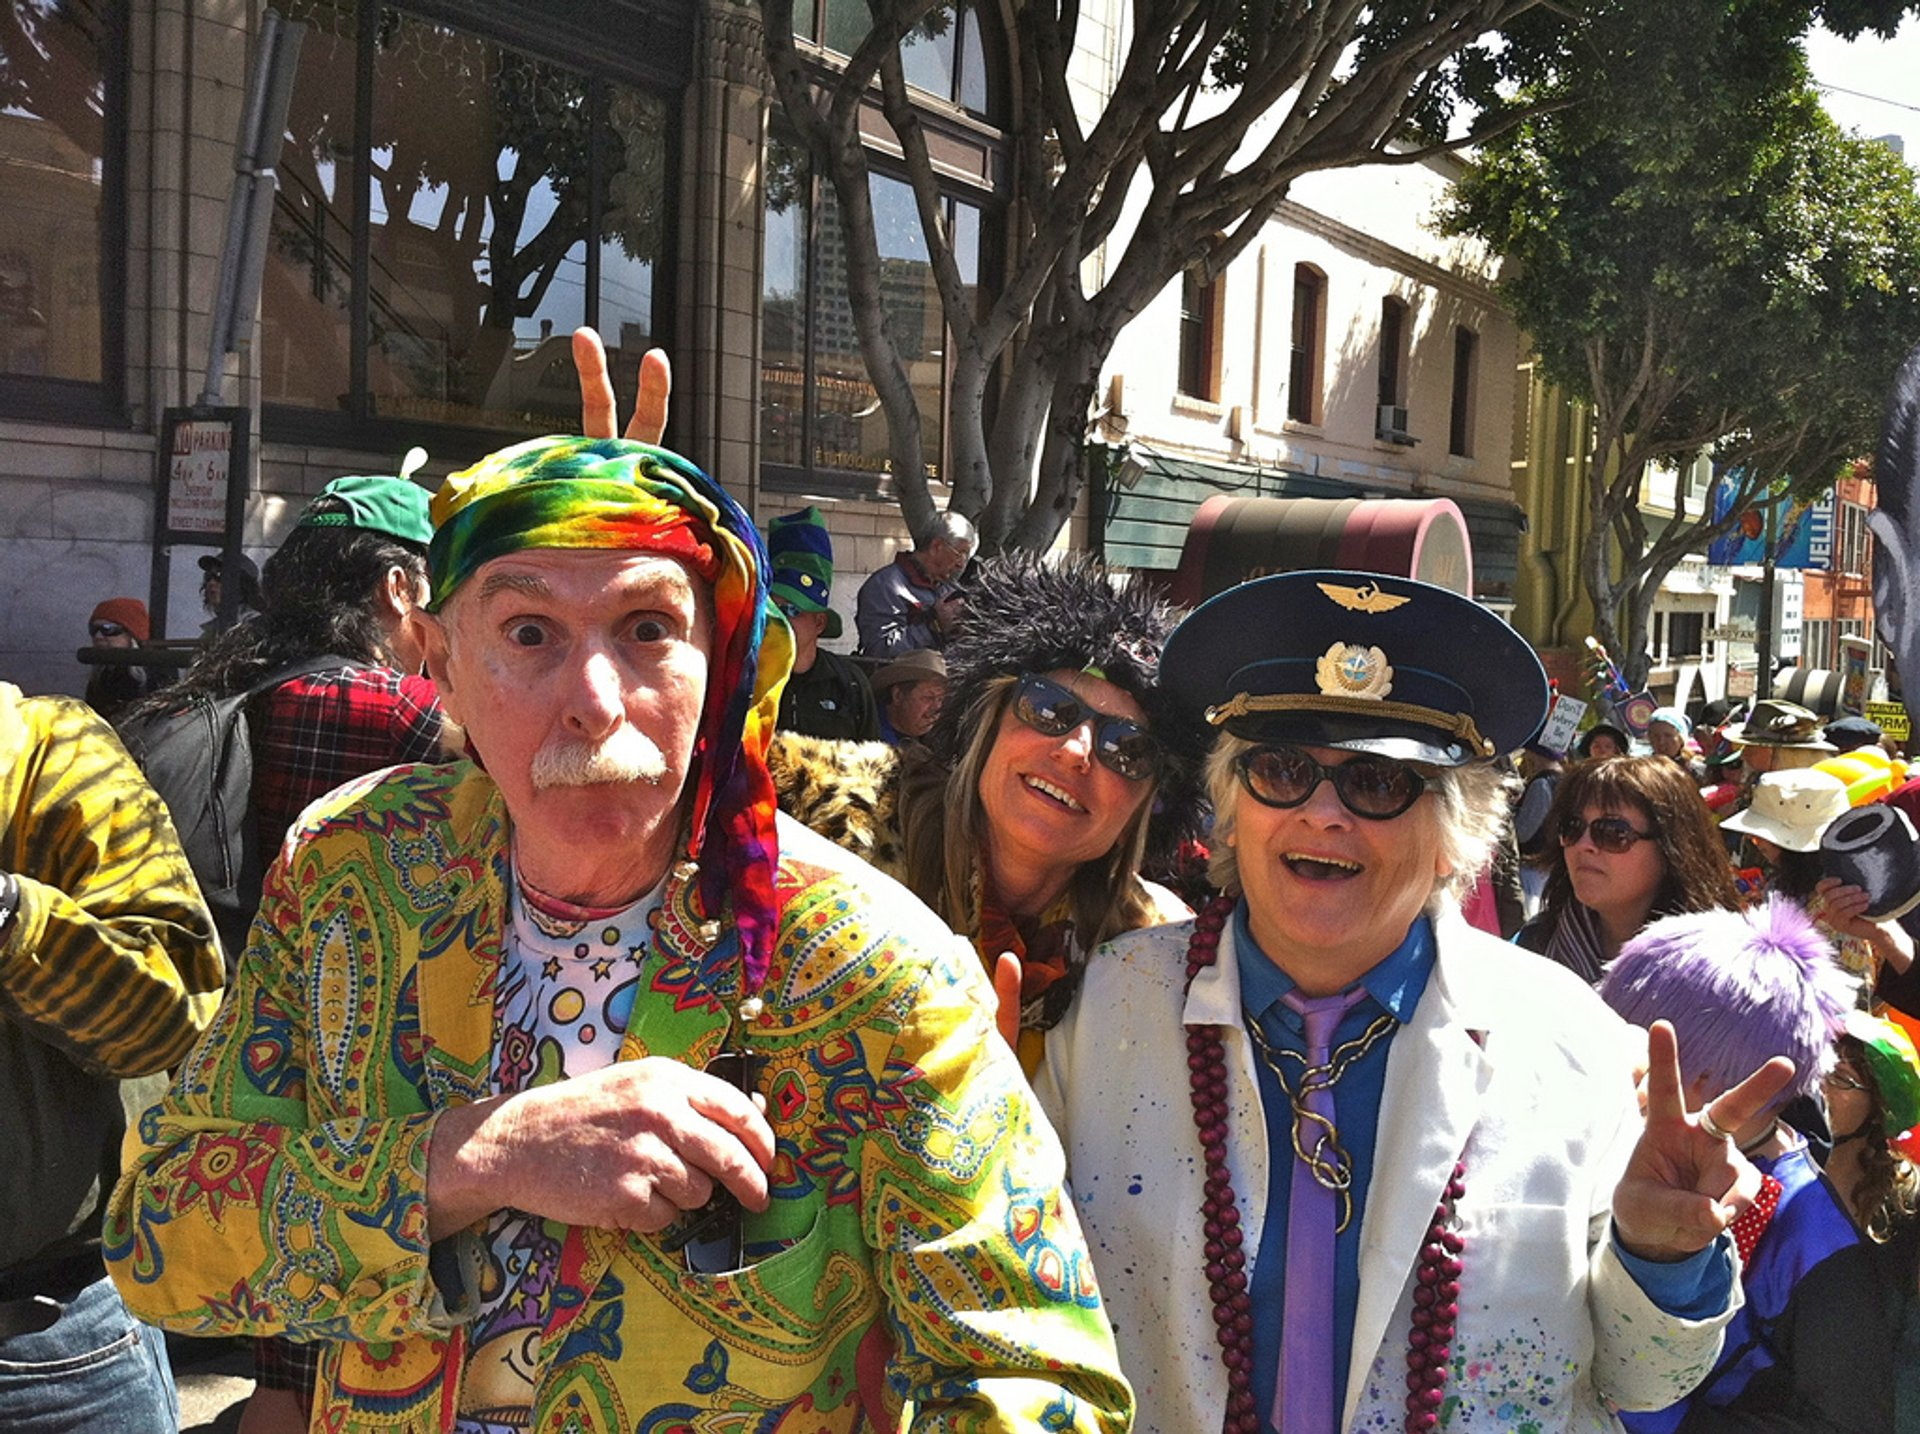 St. Stupid's Day Parade in San Francisco 2020 - Best Time